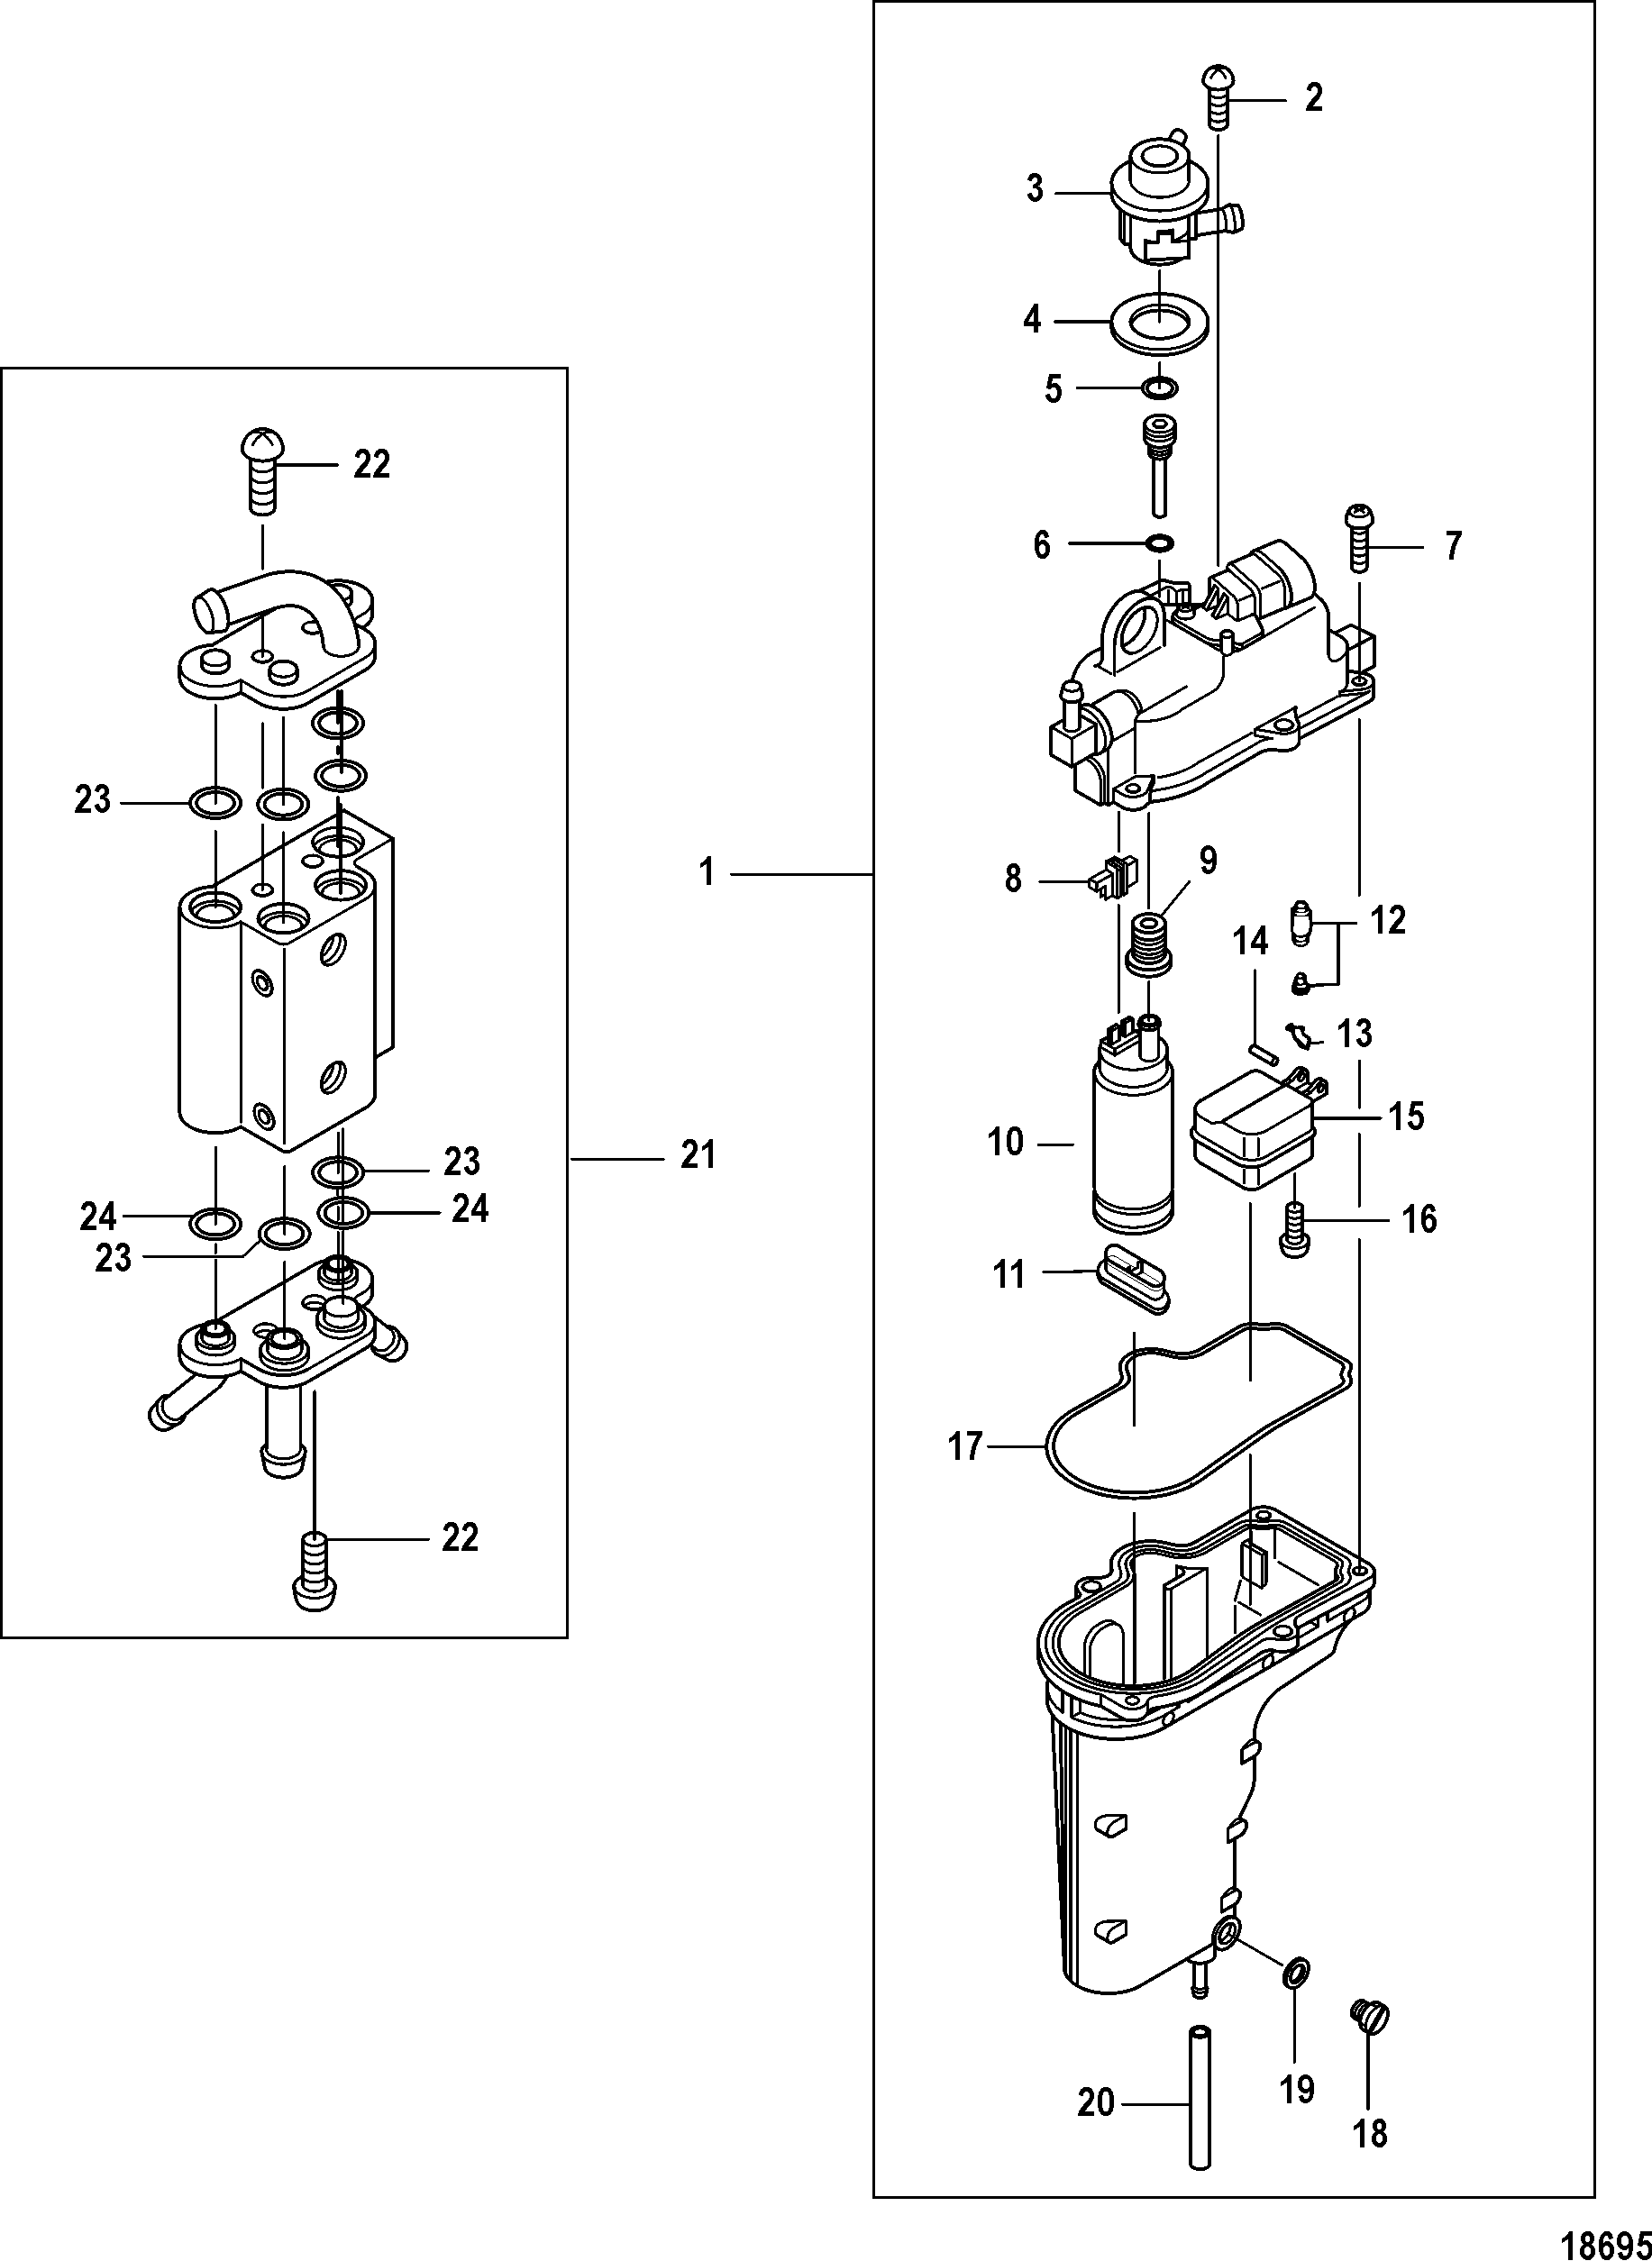 Fuel Rail And Vapor Separator Components For Mariner